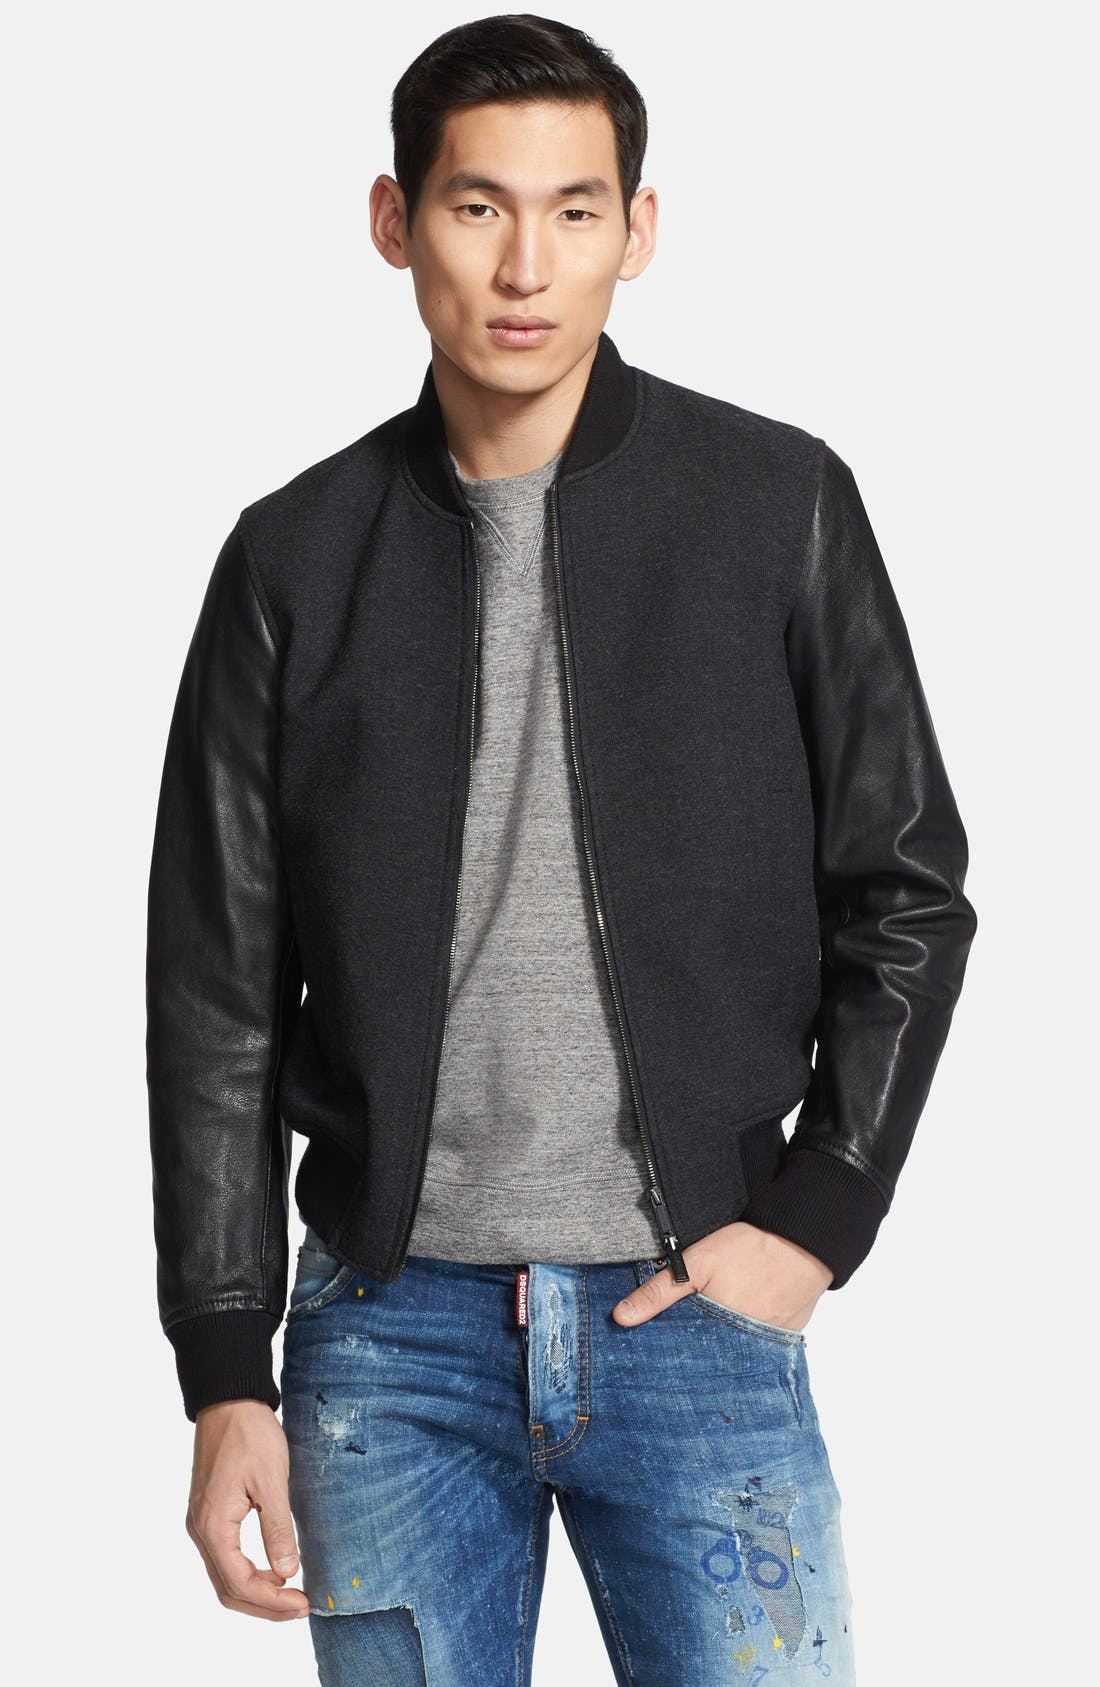 Main Image - Dsquared2 Virgin Wool Bomber Jacket with Leather Sleeves